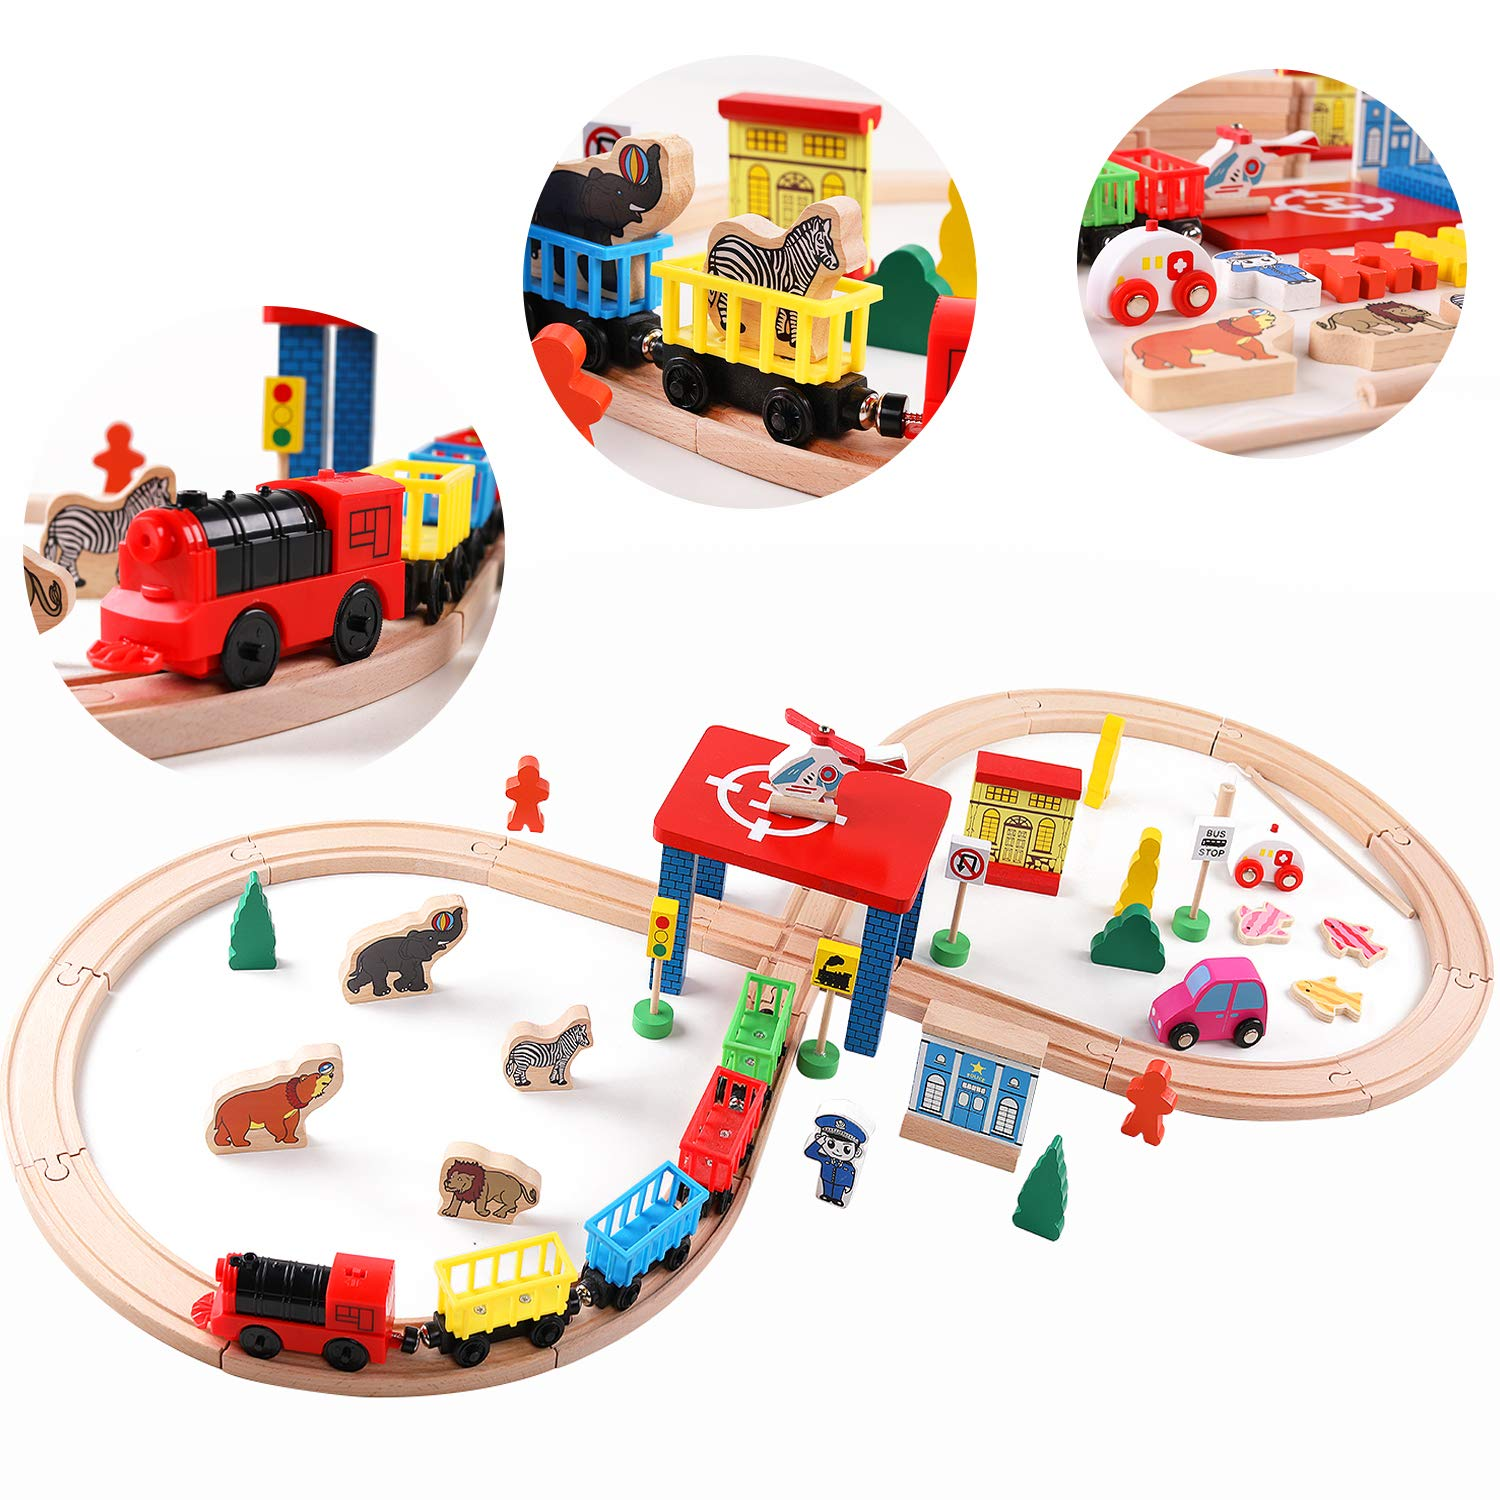 Wood Toy Train Set, QZM 55 Pieces Deluxe Train Tracks Sets for Toddler Fits Thomas&Brio, Chuggington&Imaginarium Kids Building Toys, Magnetic Accessories for Fishing, Best Gift for Boys Girls